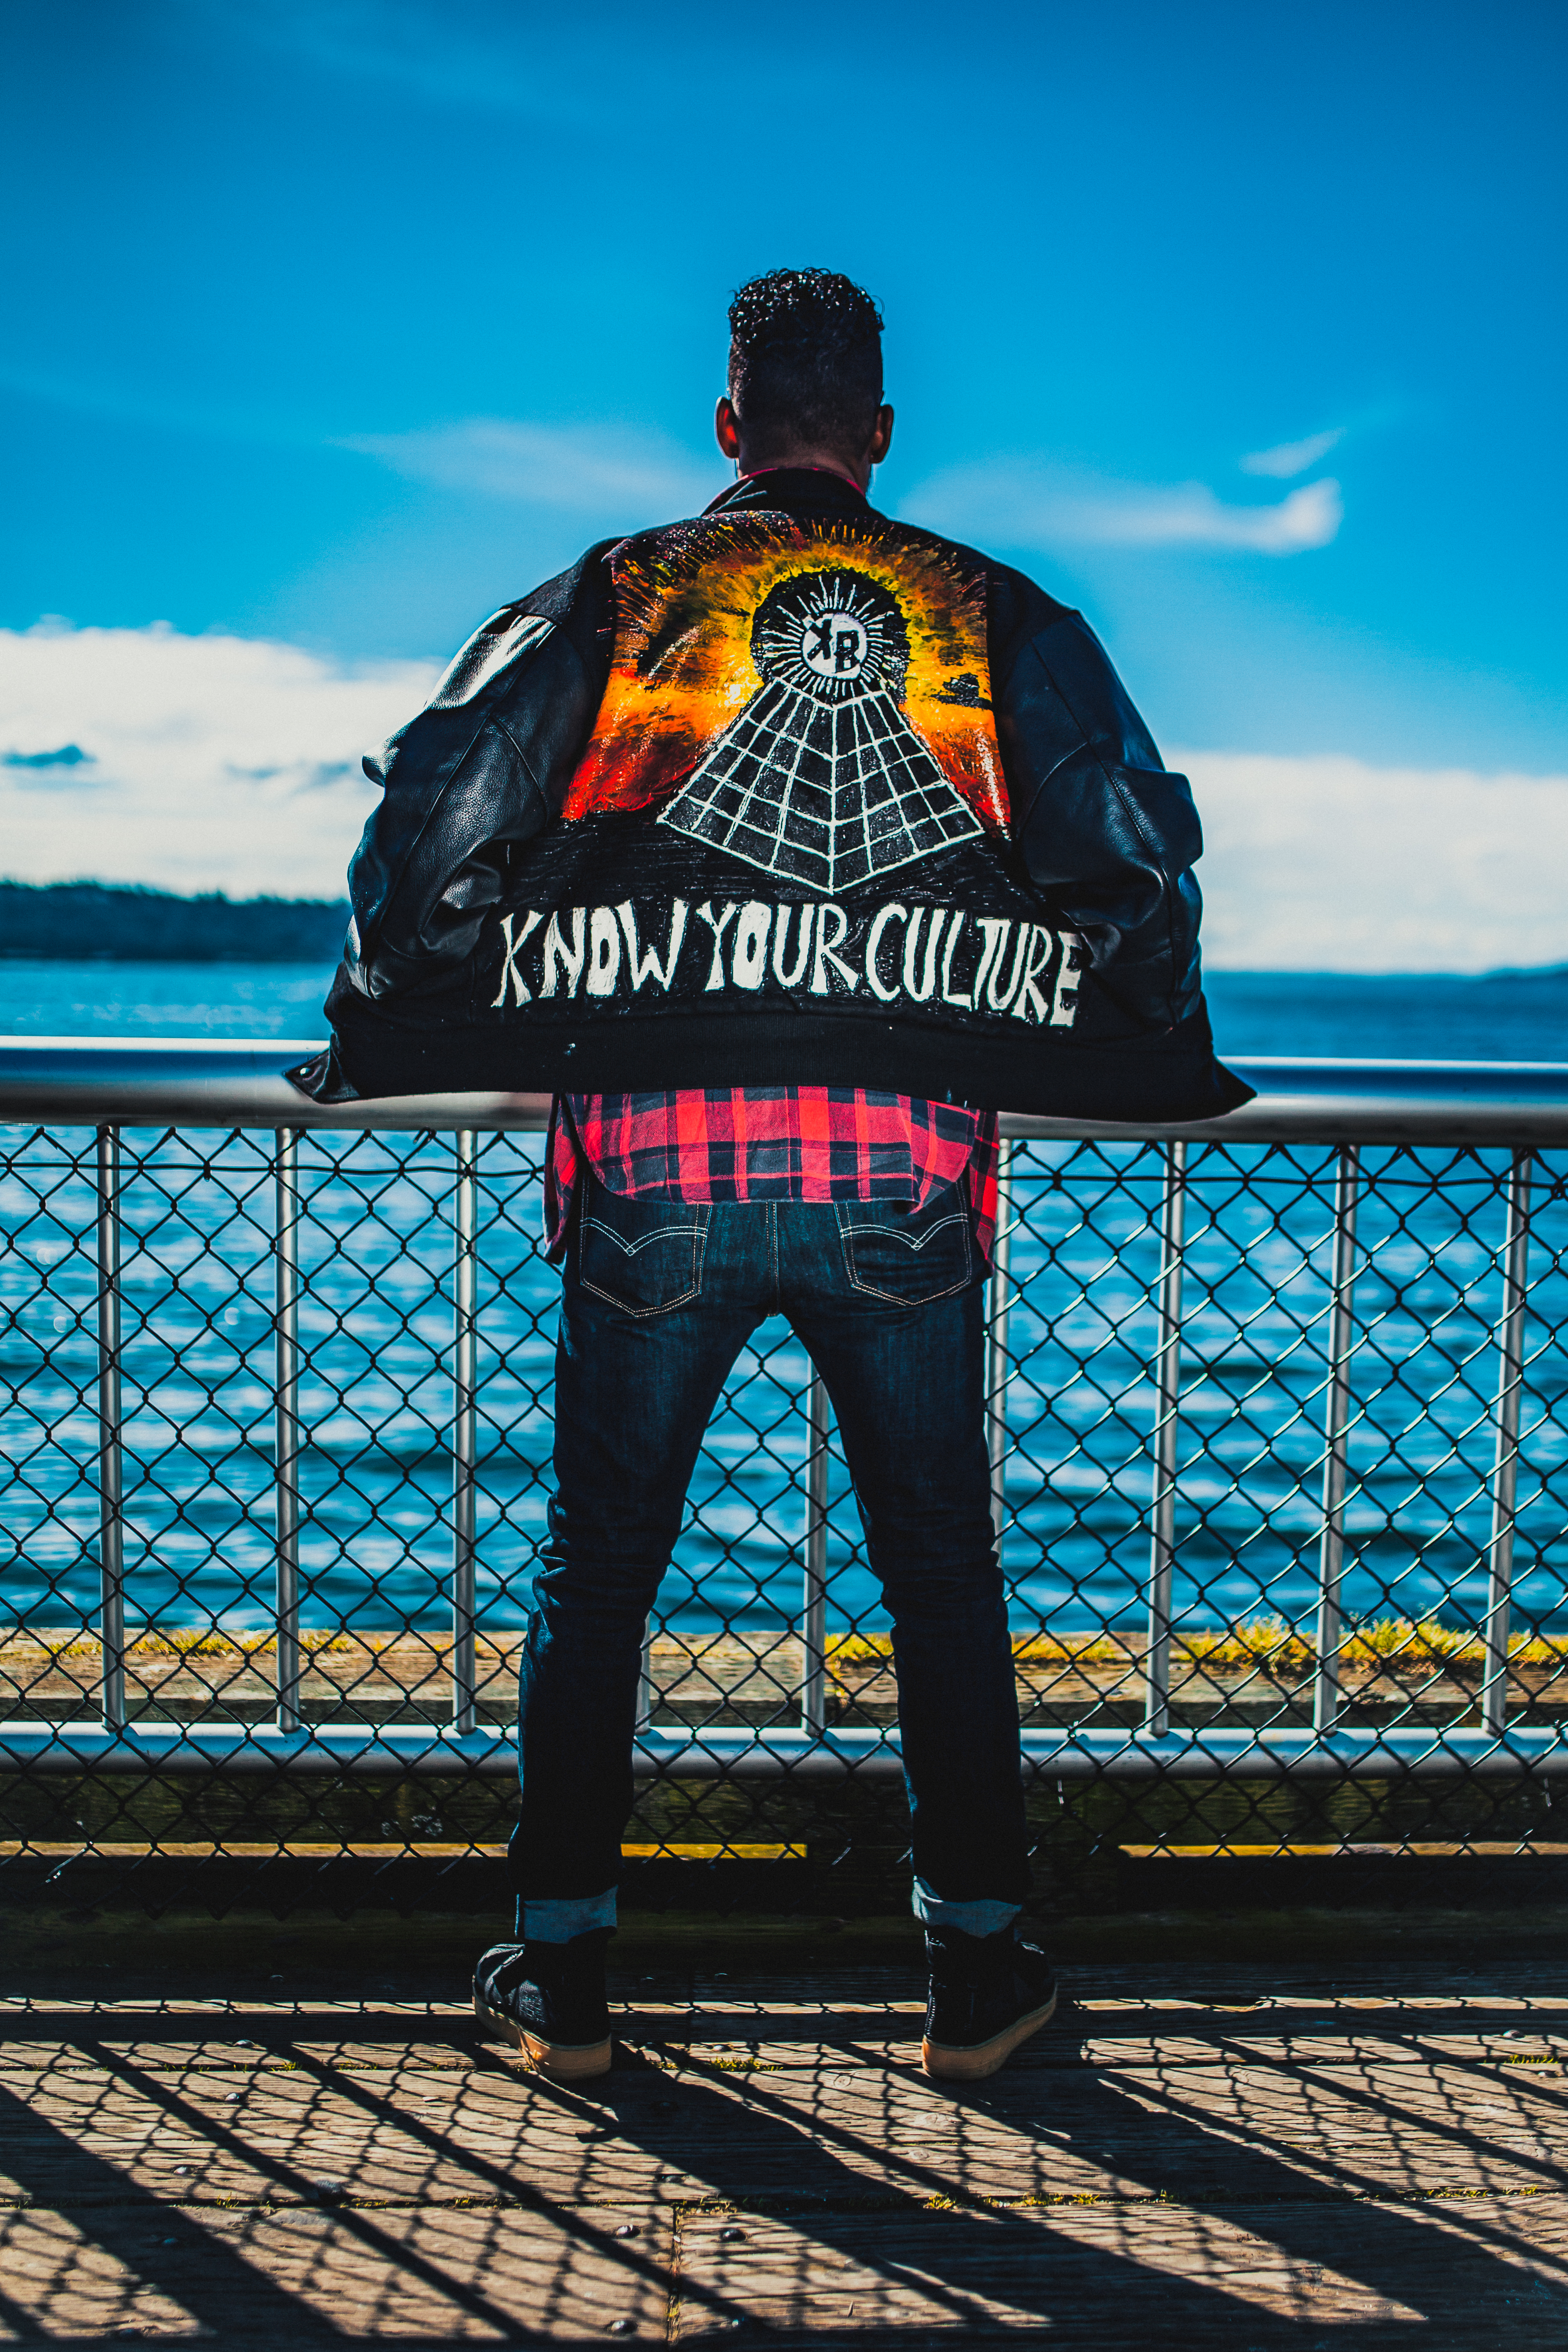 BennettKnows Announces #KnowYourCulture